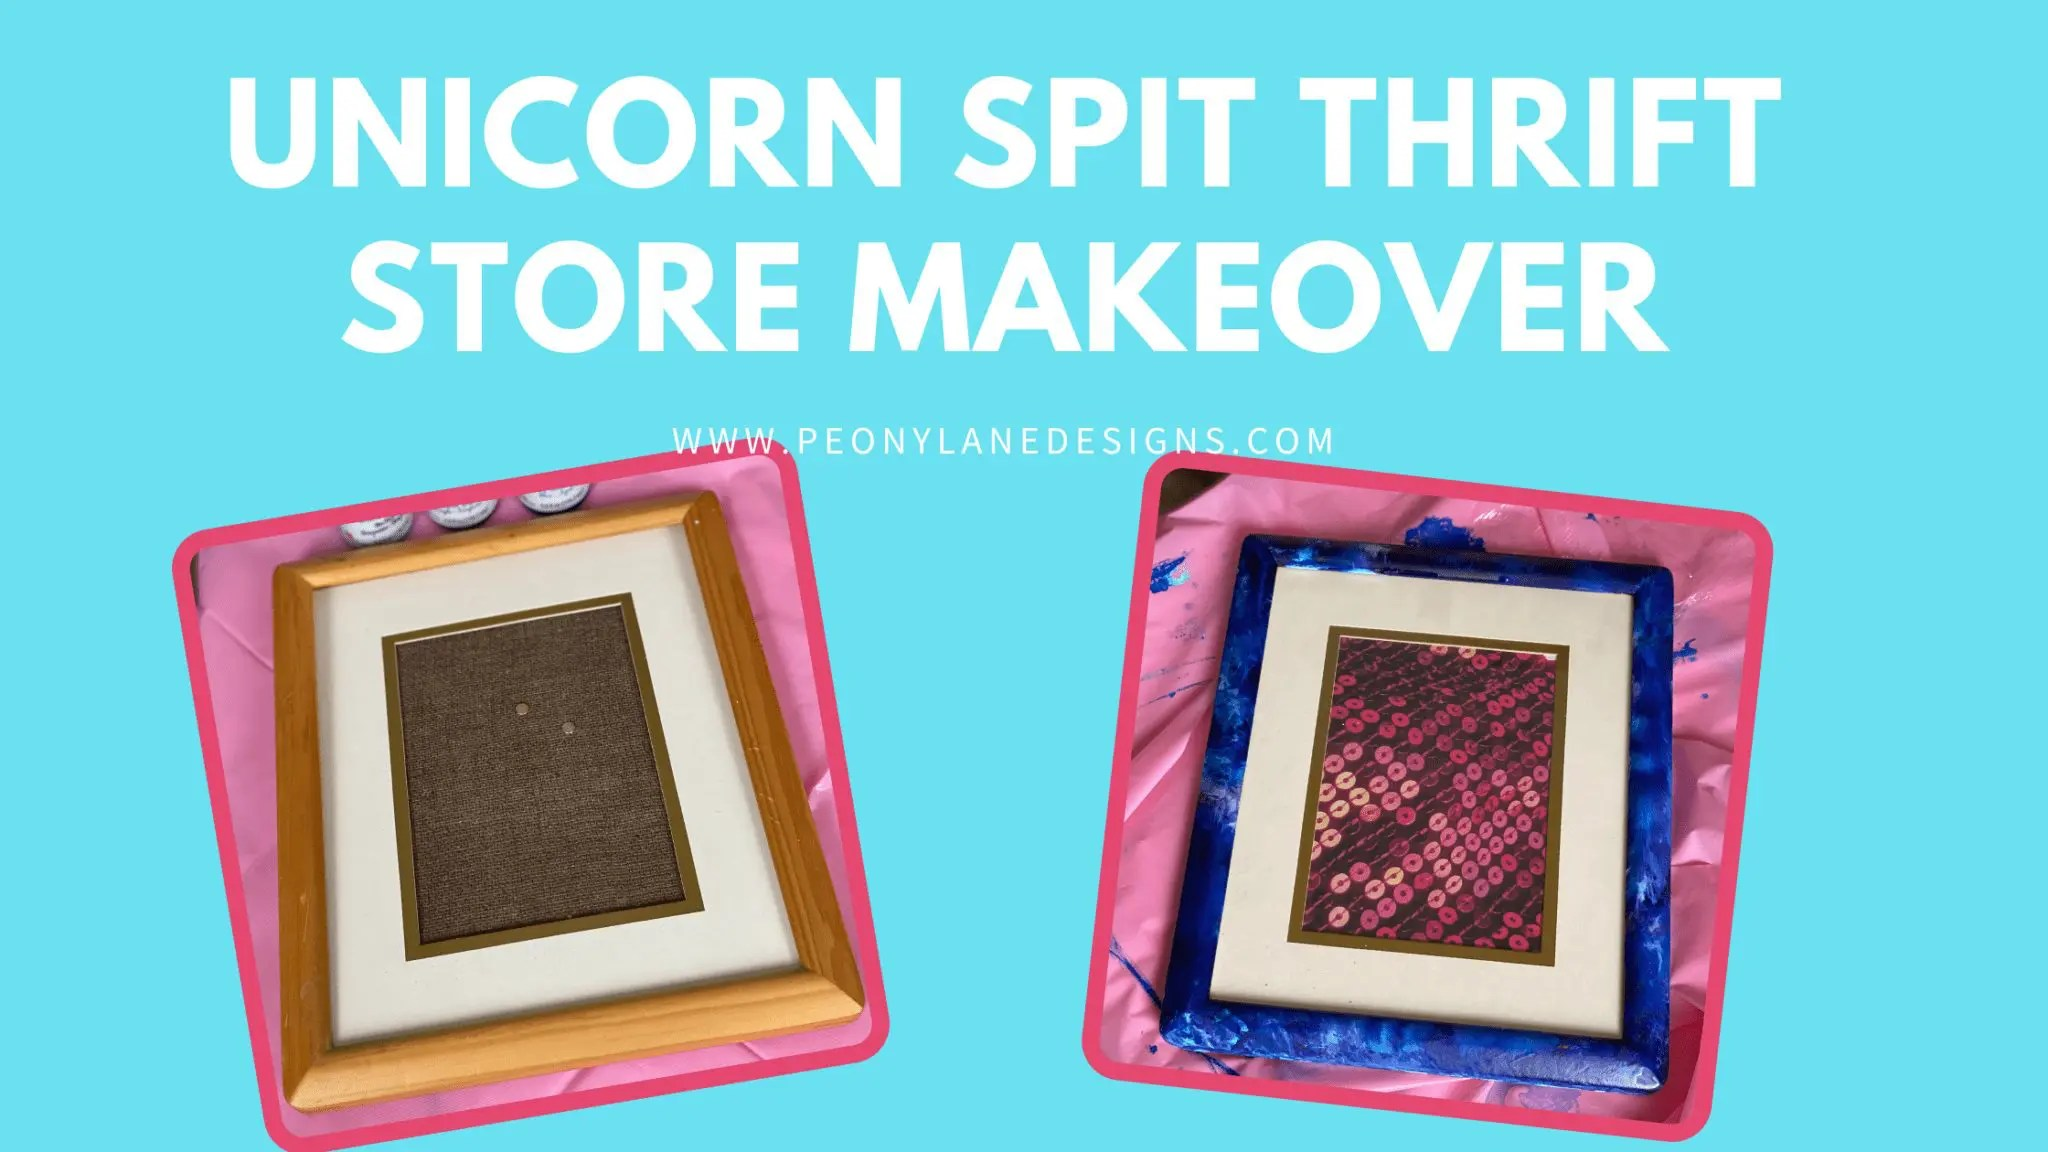 Unicorn Spit Project Thrift Store Frame Makeover